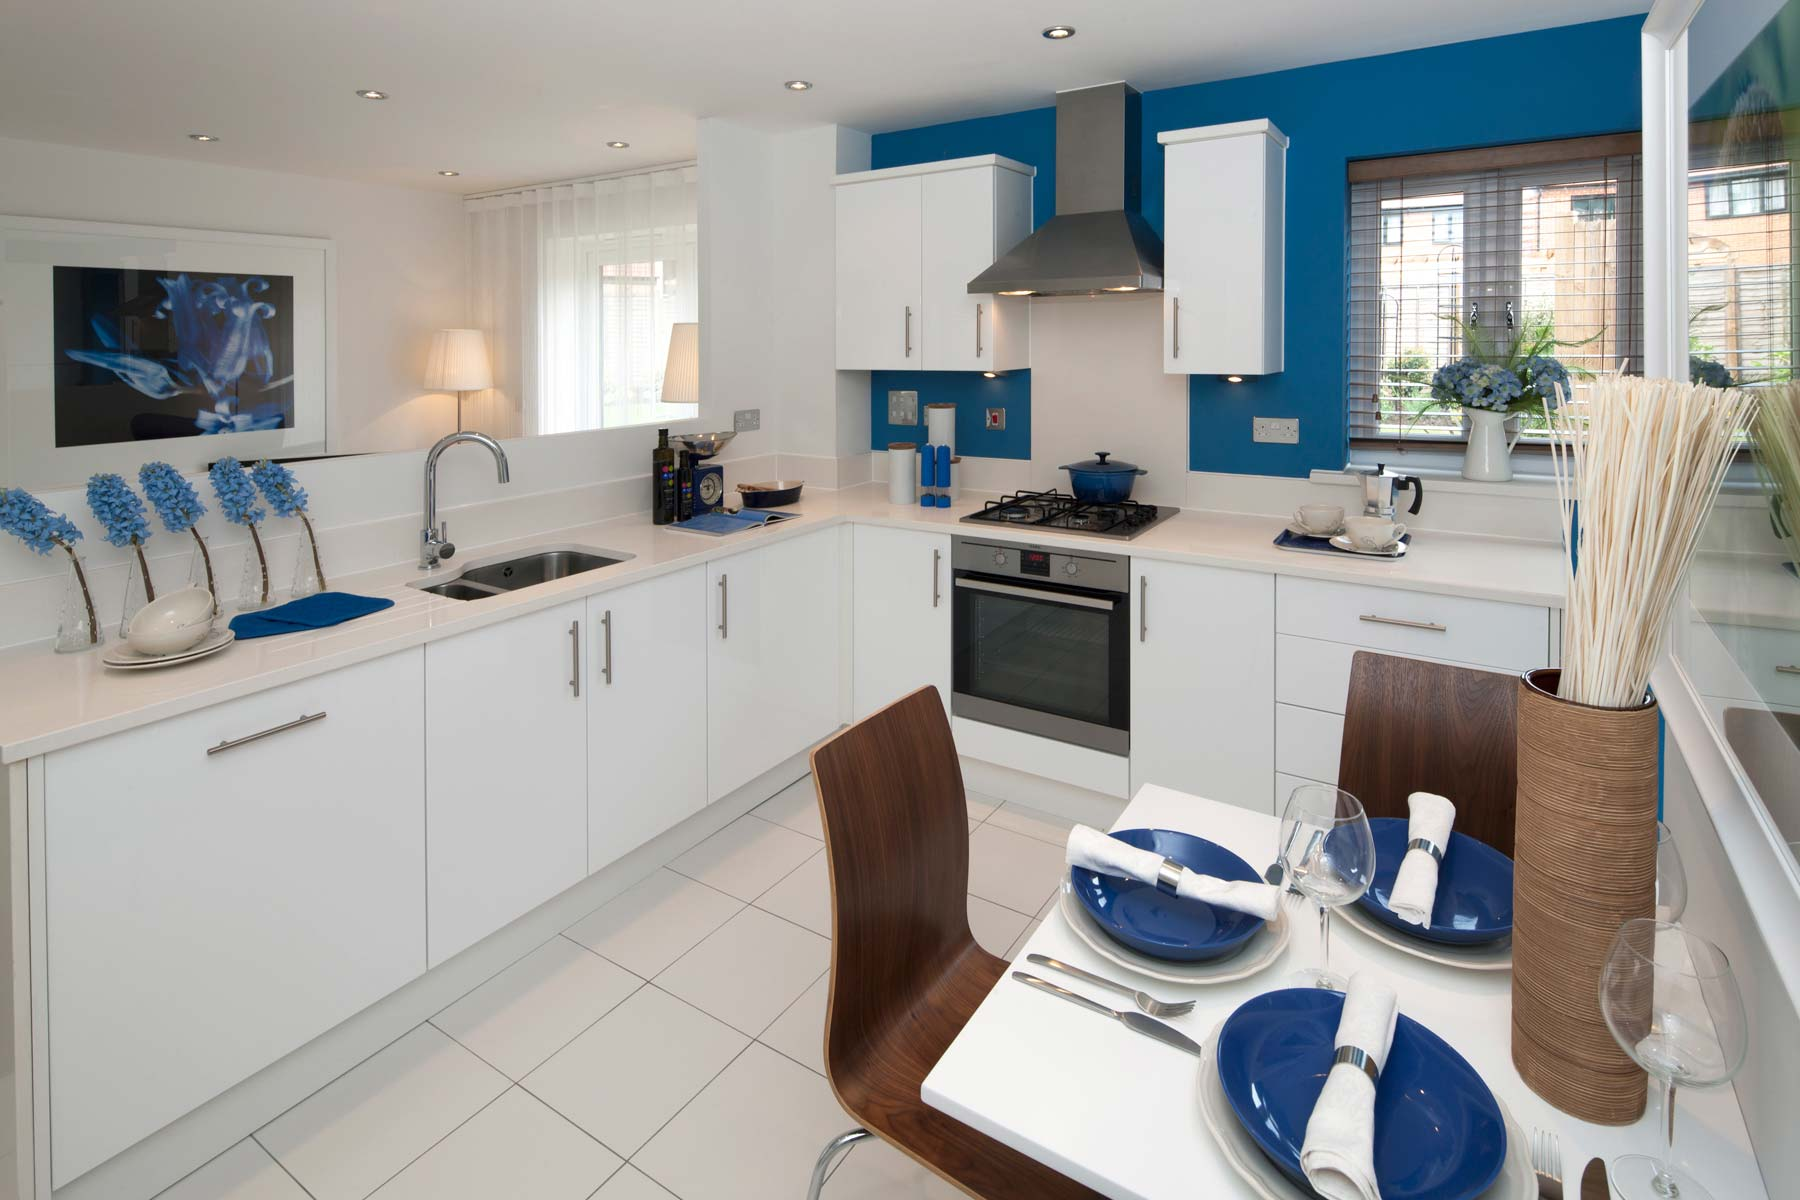 The Osterley Showhome kitchen at Leybourne Chase